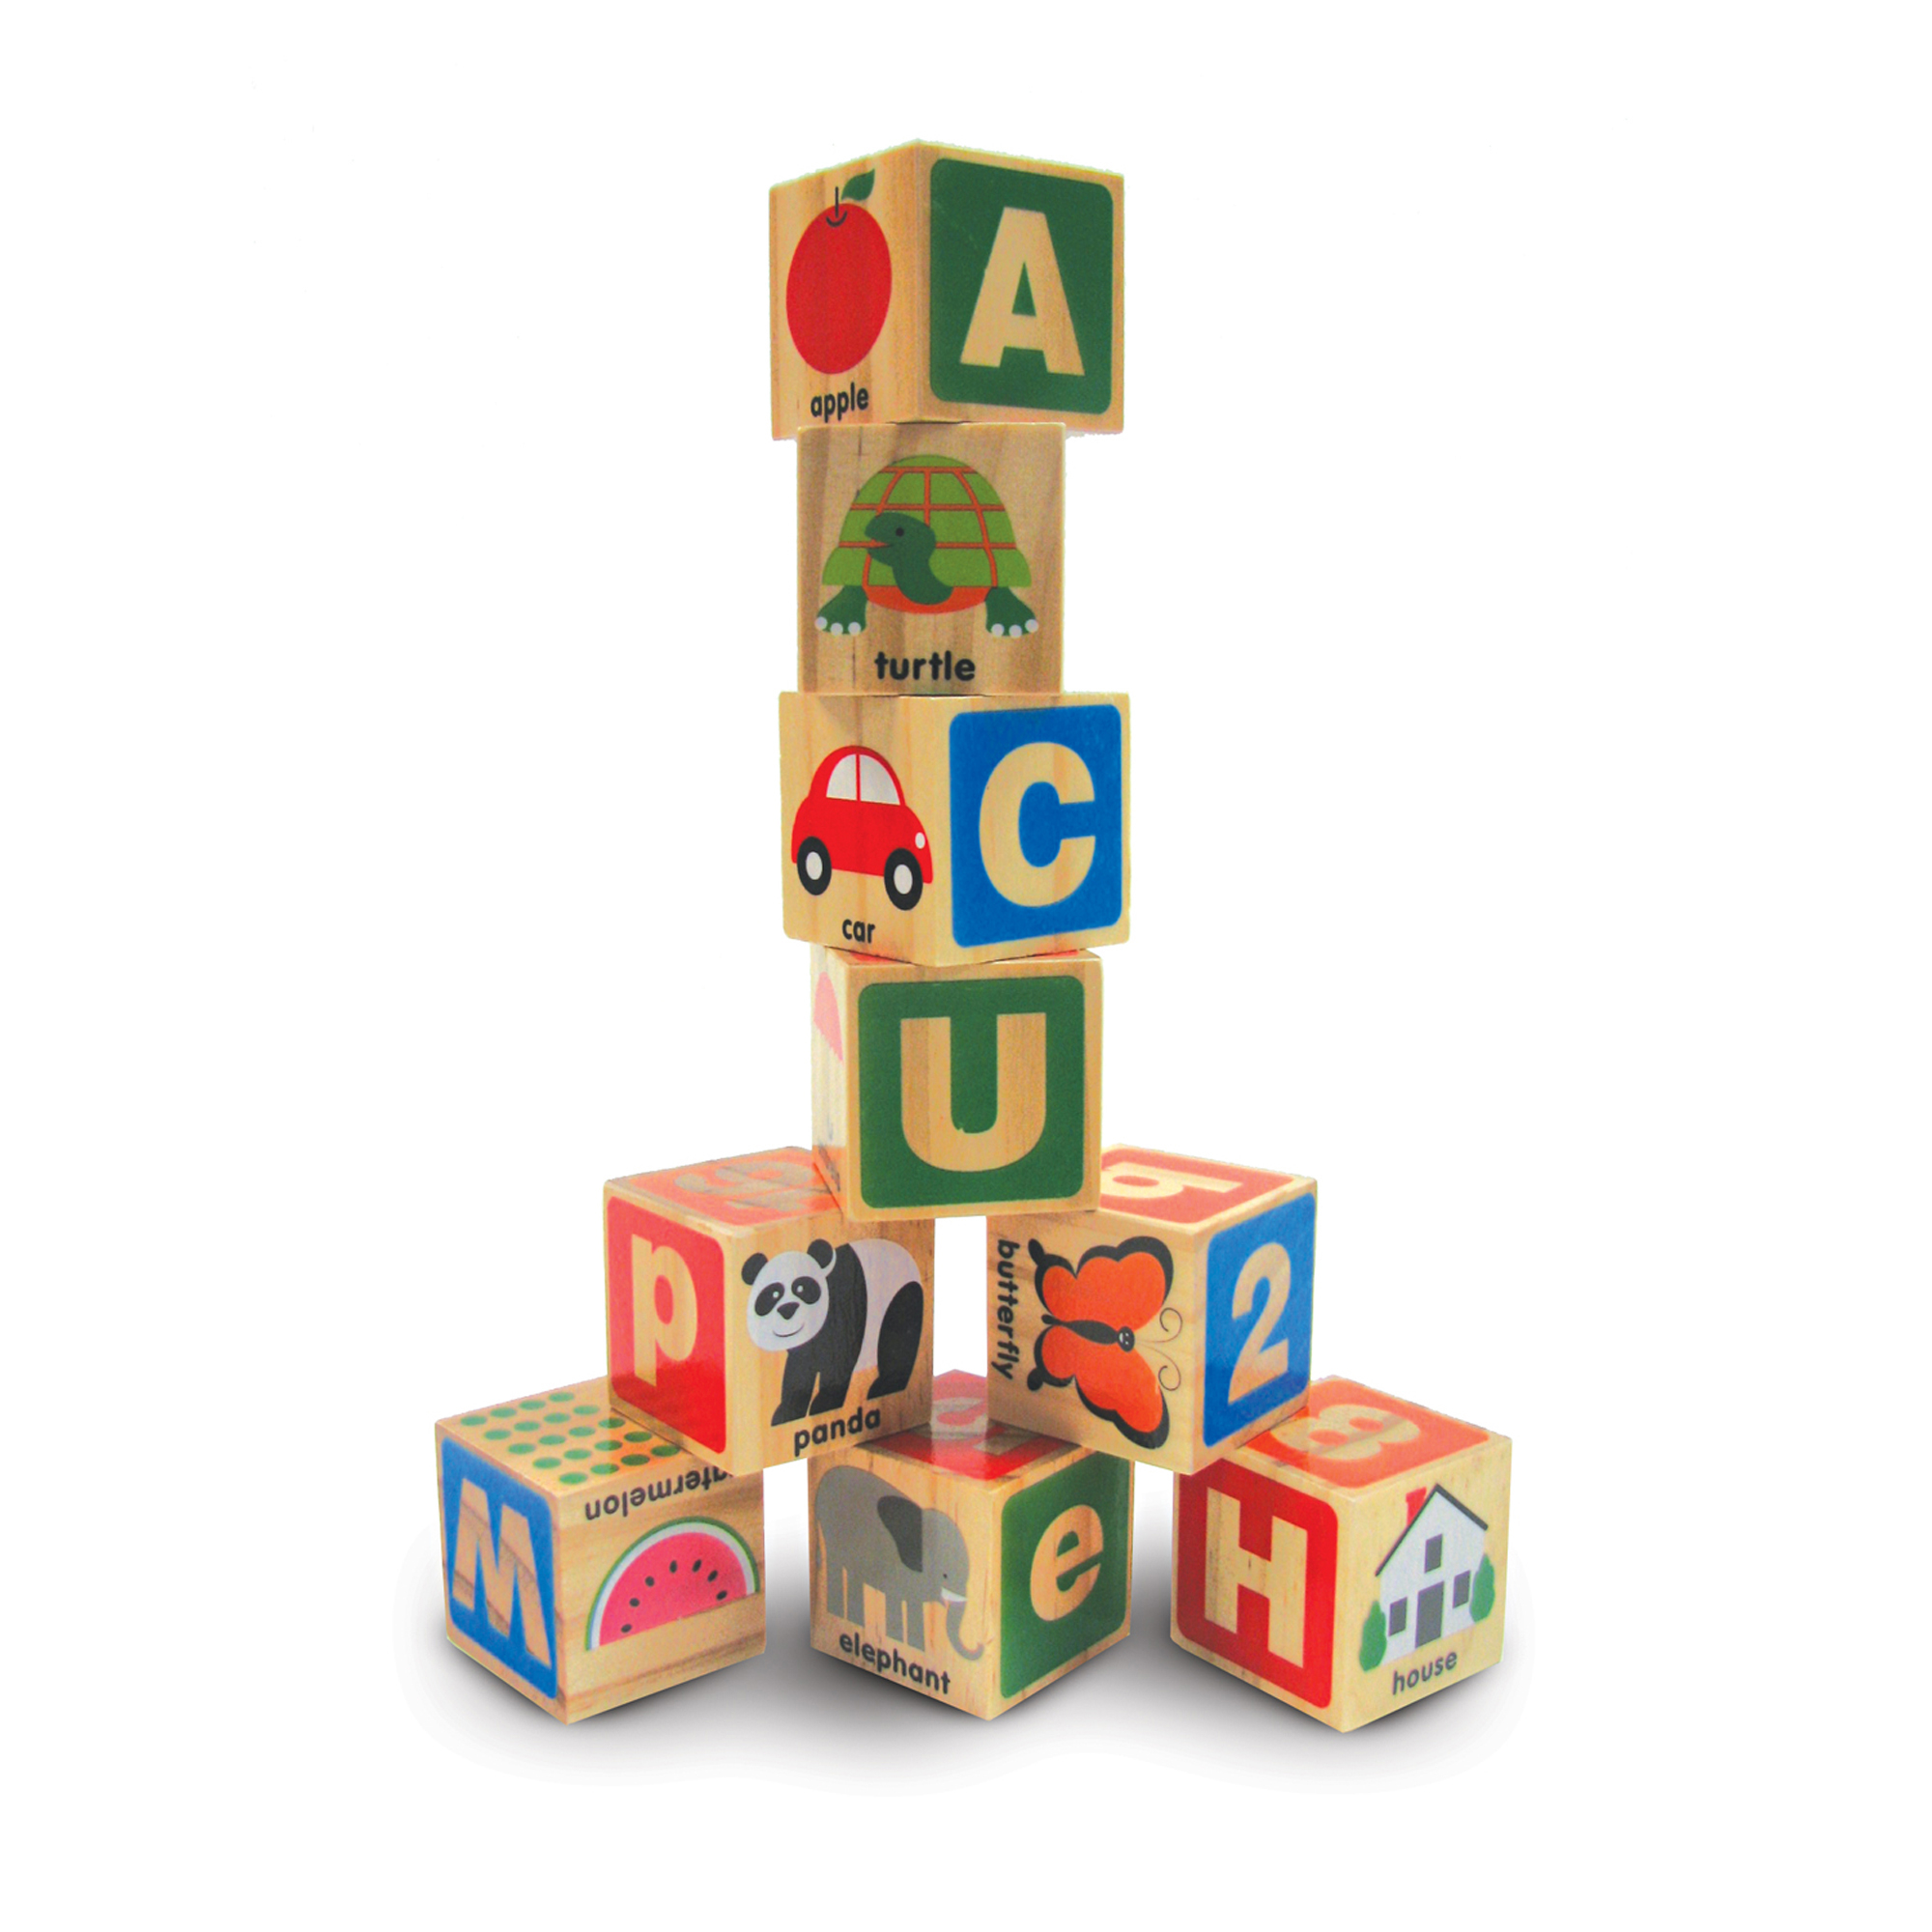 This colorful set of 26 wooden blocks, featuring letters, numbers, and pictures, is just right for stacking, sorting, and learning! Perfectly sized for little hands, these blocks will provide endless hours of hands-on playtime, encouraging letter and number recognition, fine motor skills, and problem-solving along the way.